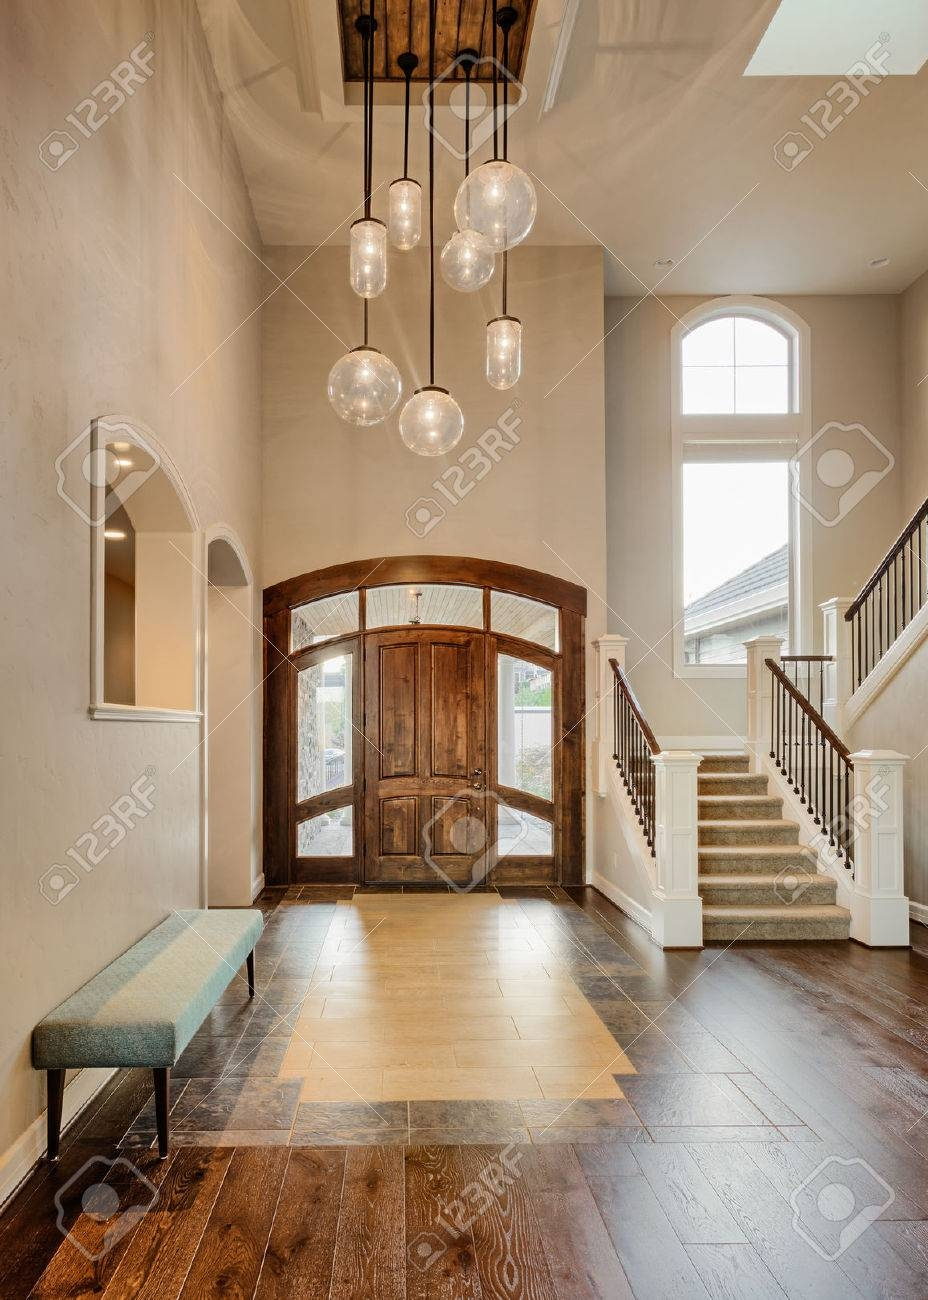 Beautiful Foyer In Home; Entryway With Stairs, Pendant Lights for Vaulted Ceiling Pendant Lights (Image 1 of 15)